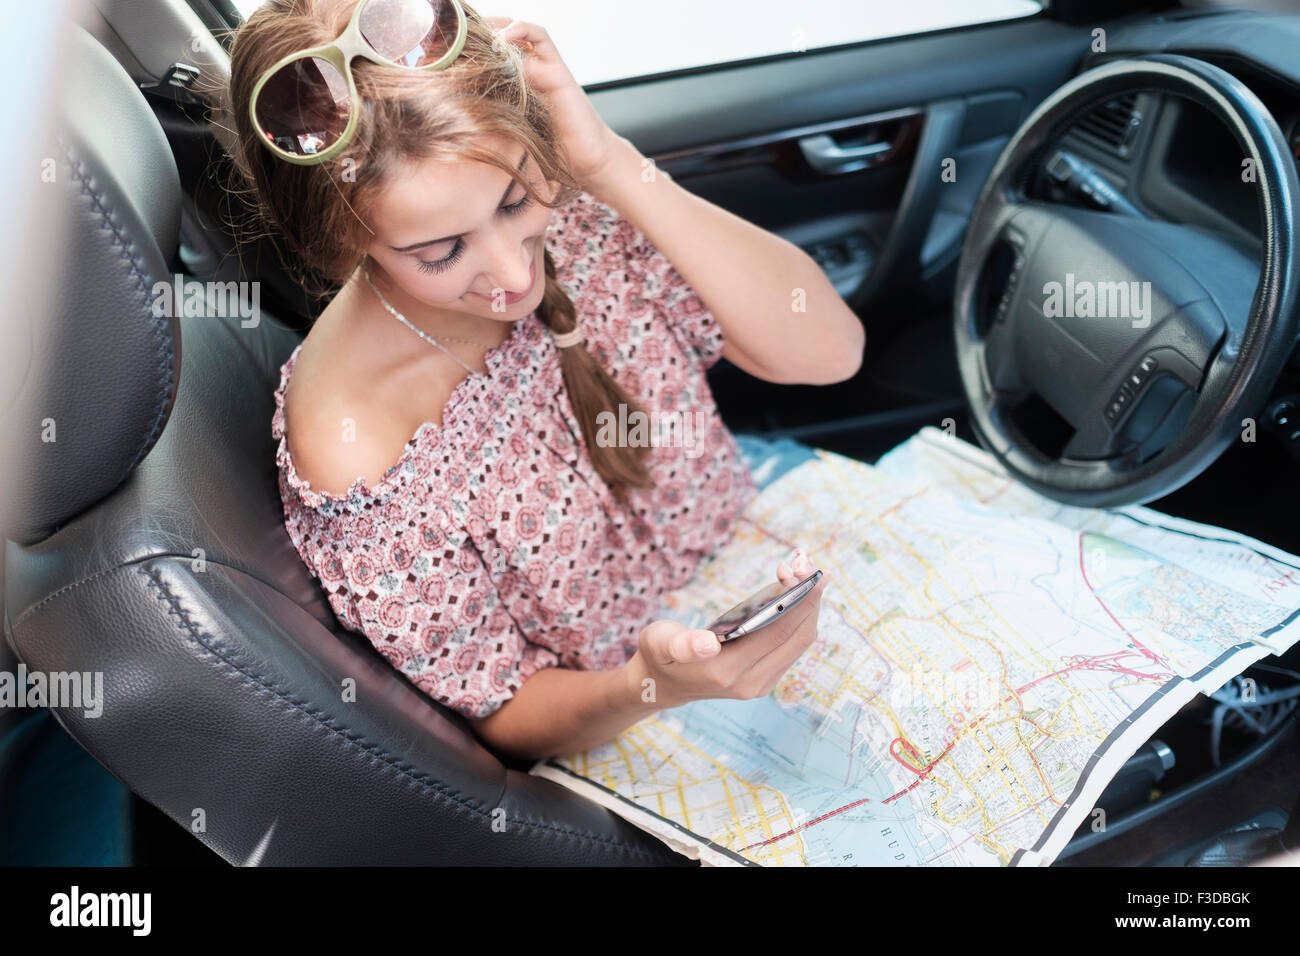 Woman checking phone in car with map on lap Stock Photo ... on navigation in car, water in car, time in car, entertainment in car,